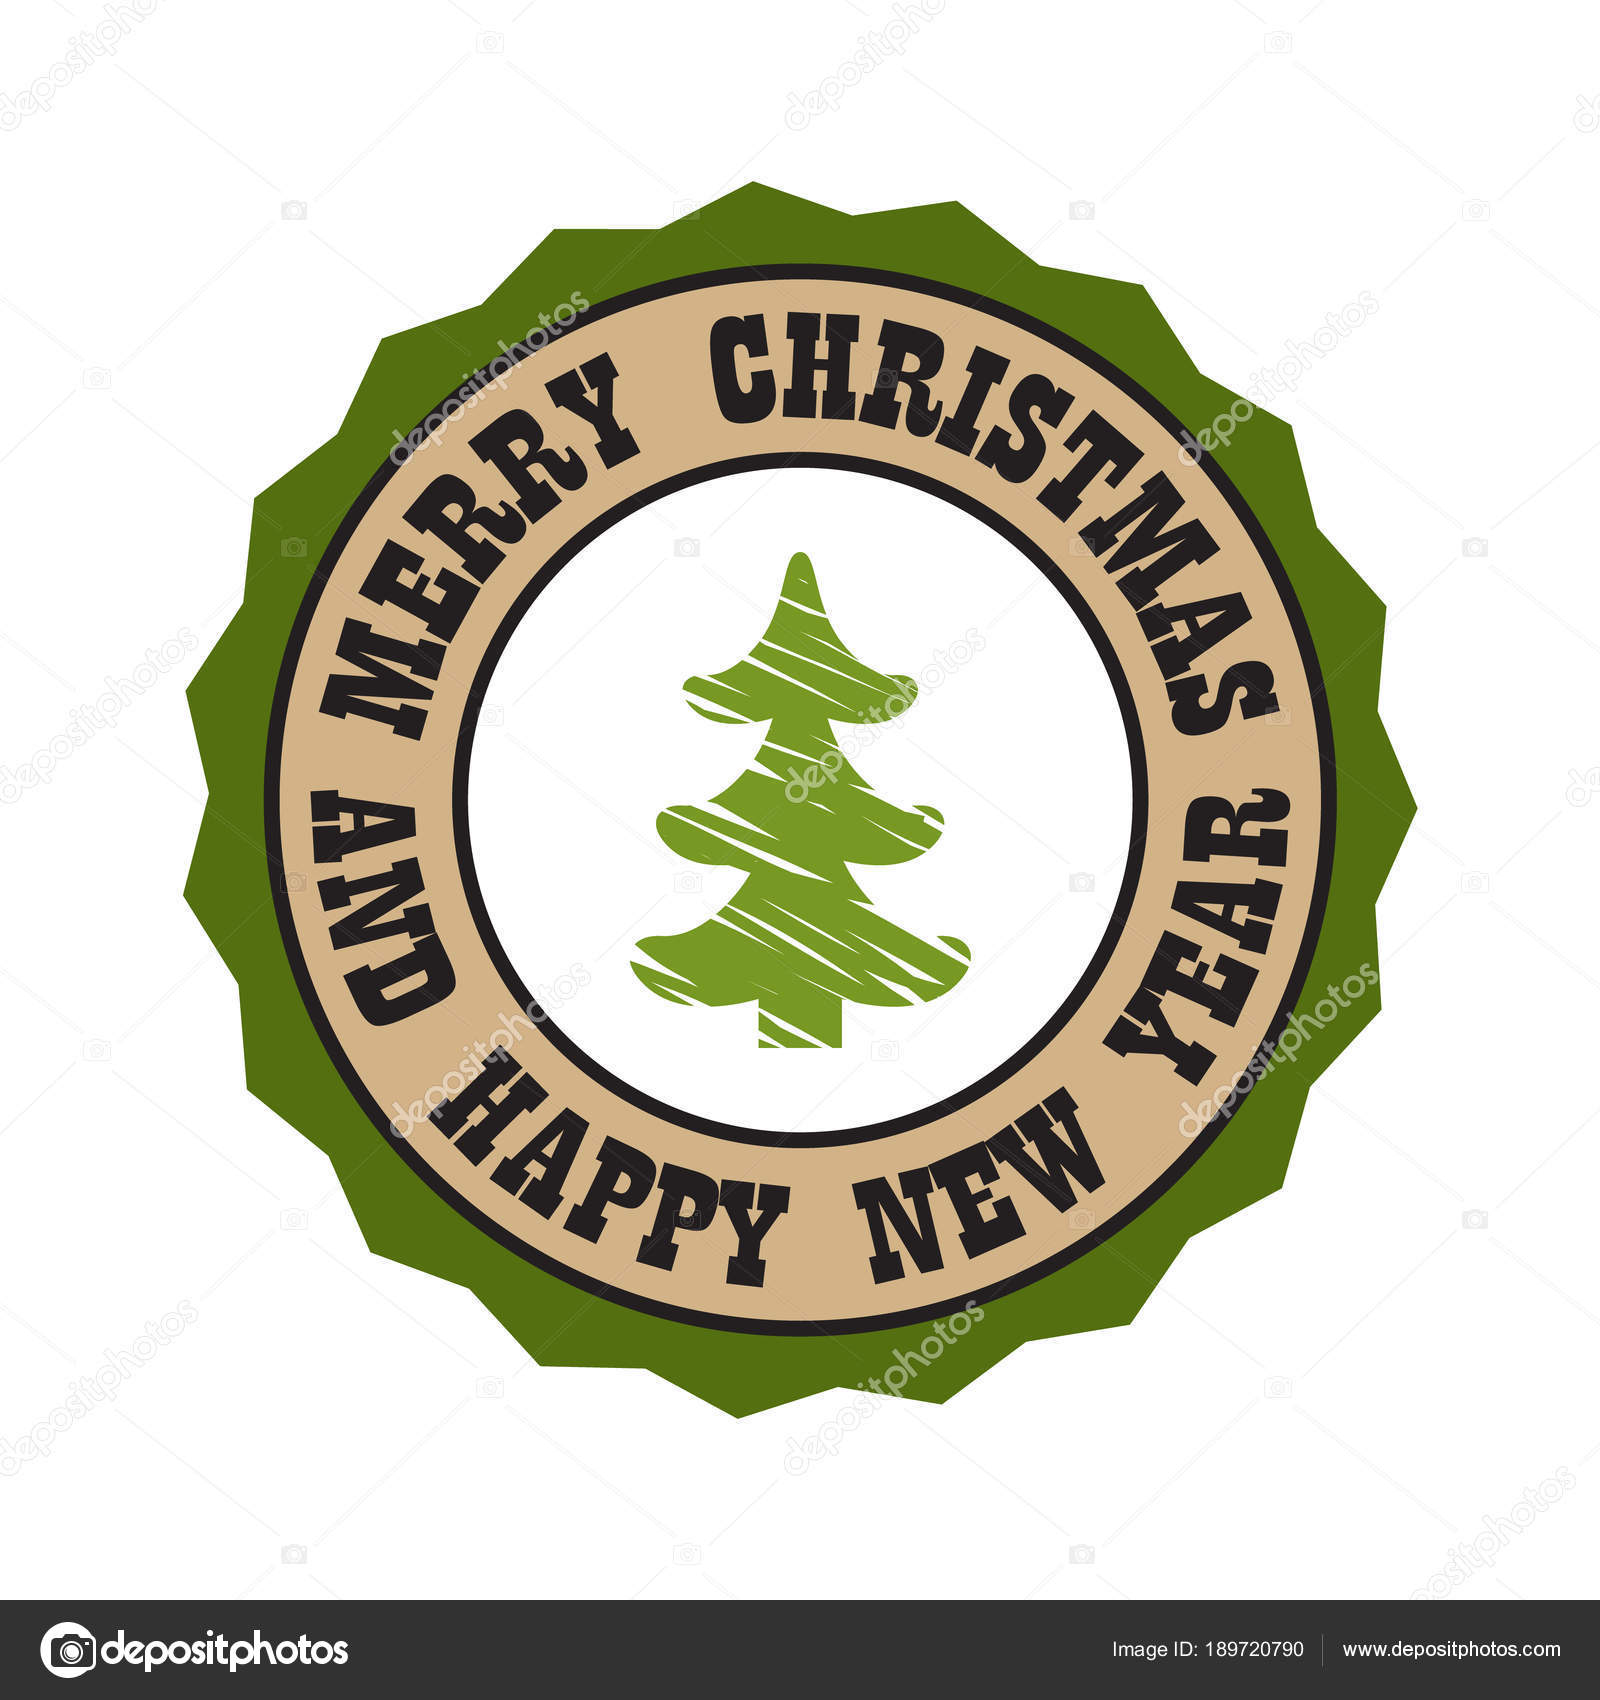 merry christmas and happy new year sticker of round shape with borders and frames title and image of pine tree sketch vector illustration logo design